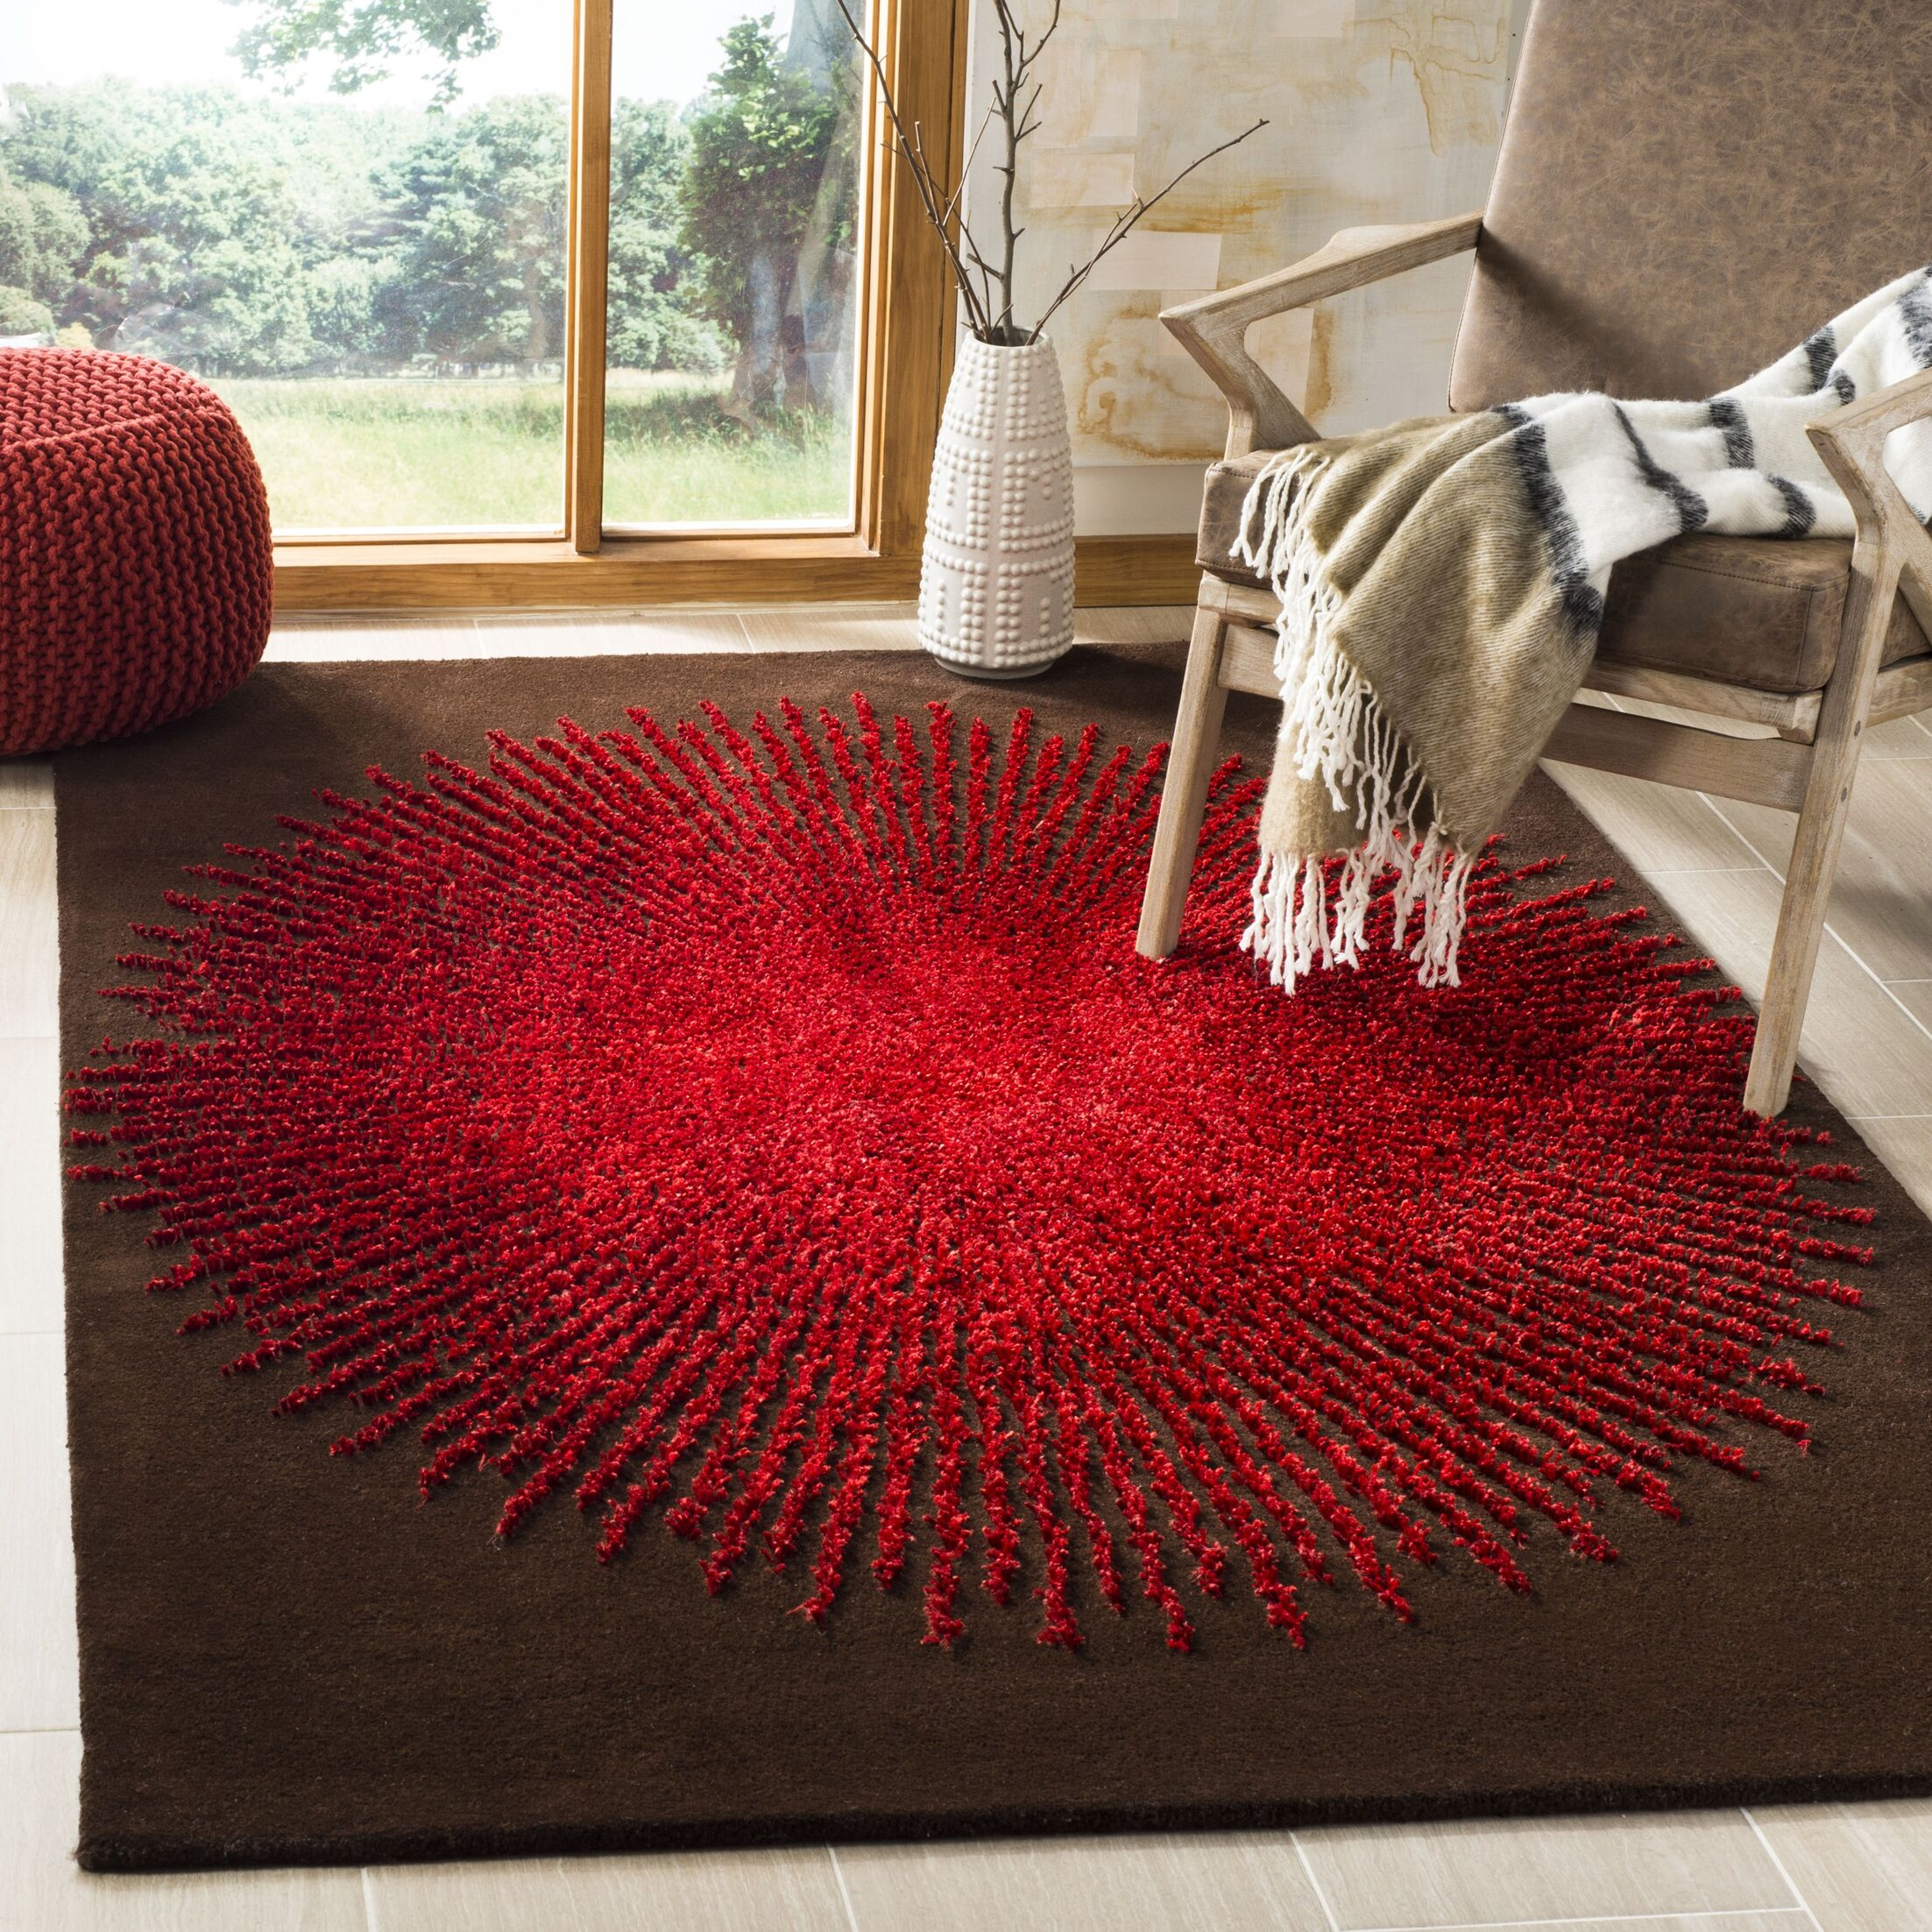 Olivarria Hand-Tufted Brown/Red Area Rug Rug Size: Rectangle 3'6